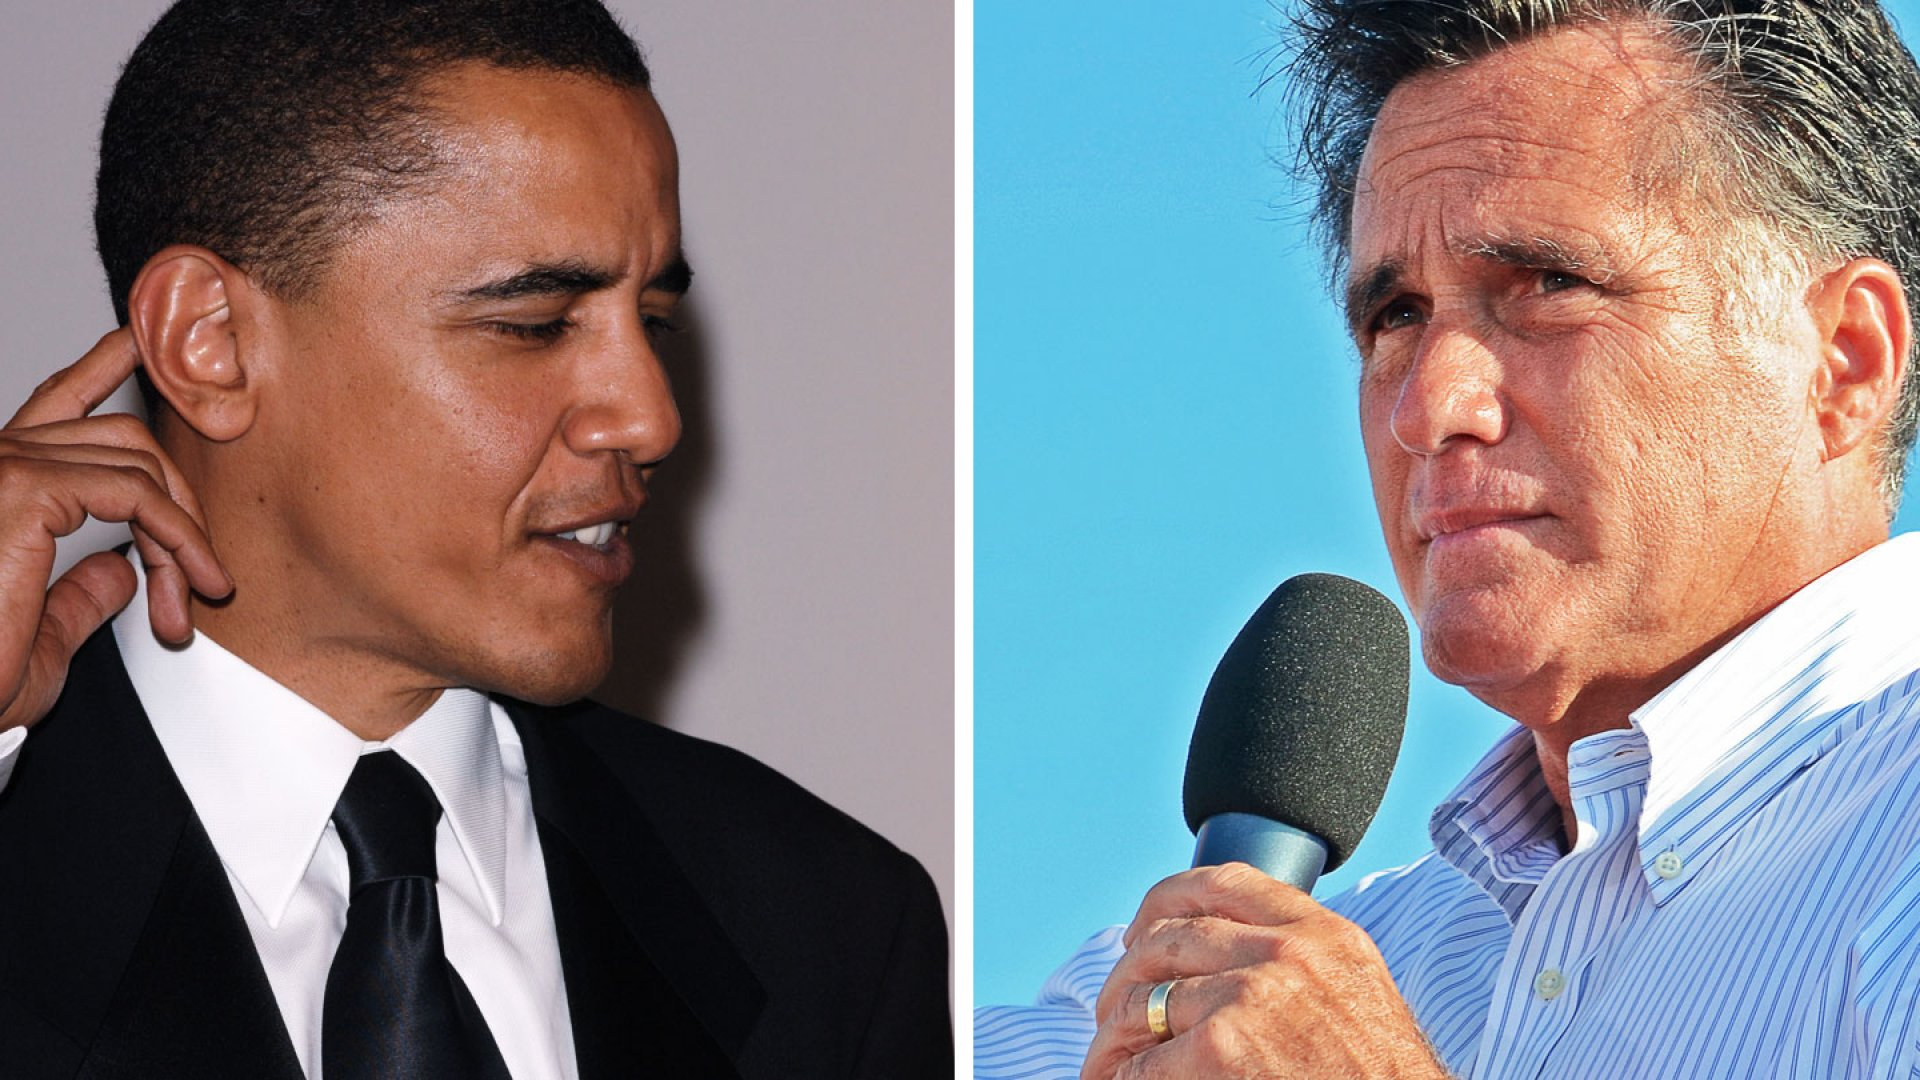 Hey Obama, Romney: Where Are the Specifics?